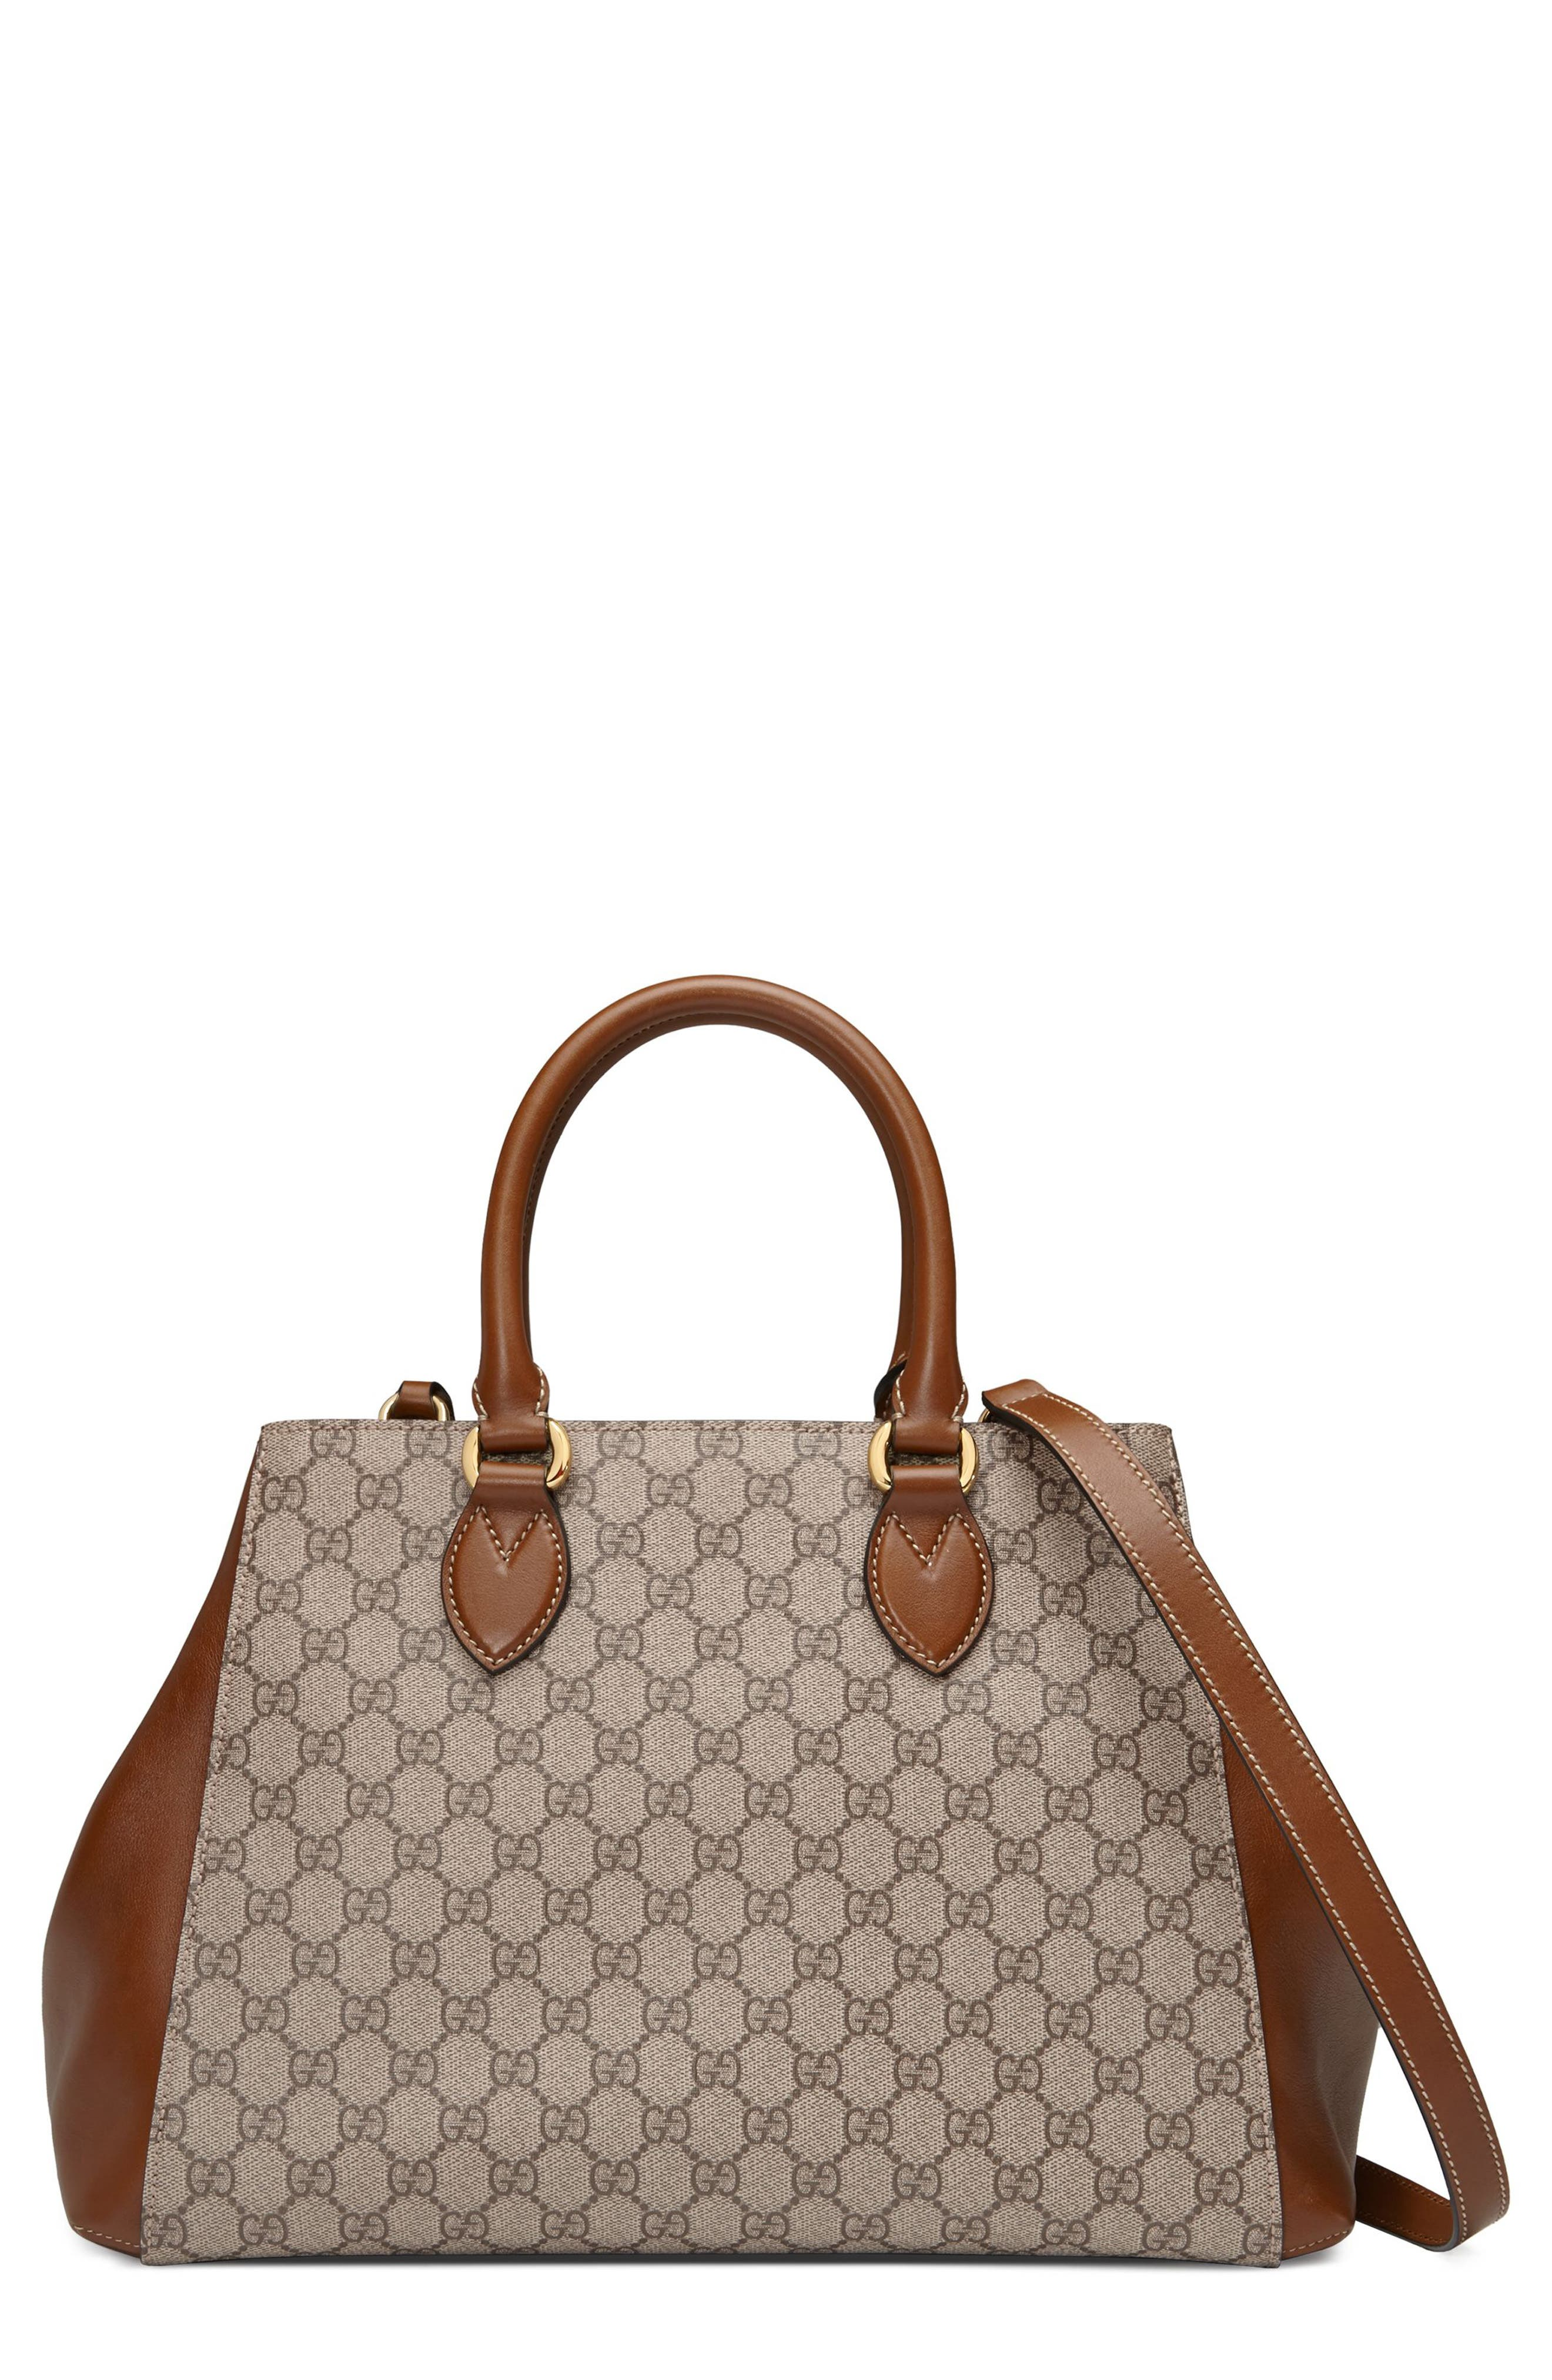 Gucci Large Top Handle GG Supreme Canvas & Leather Bag